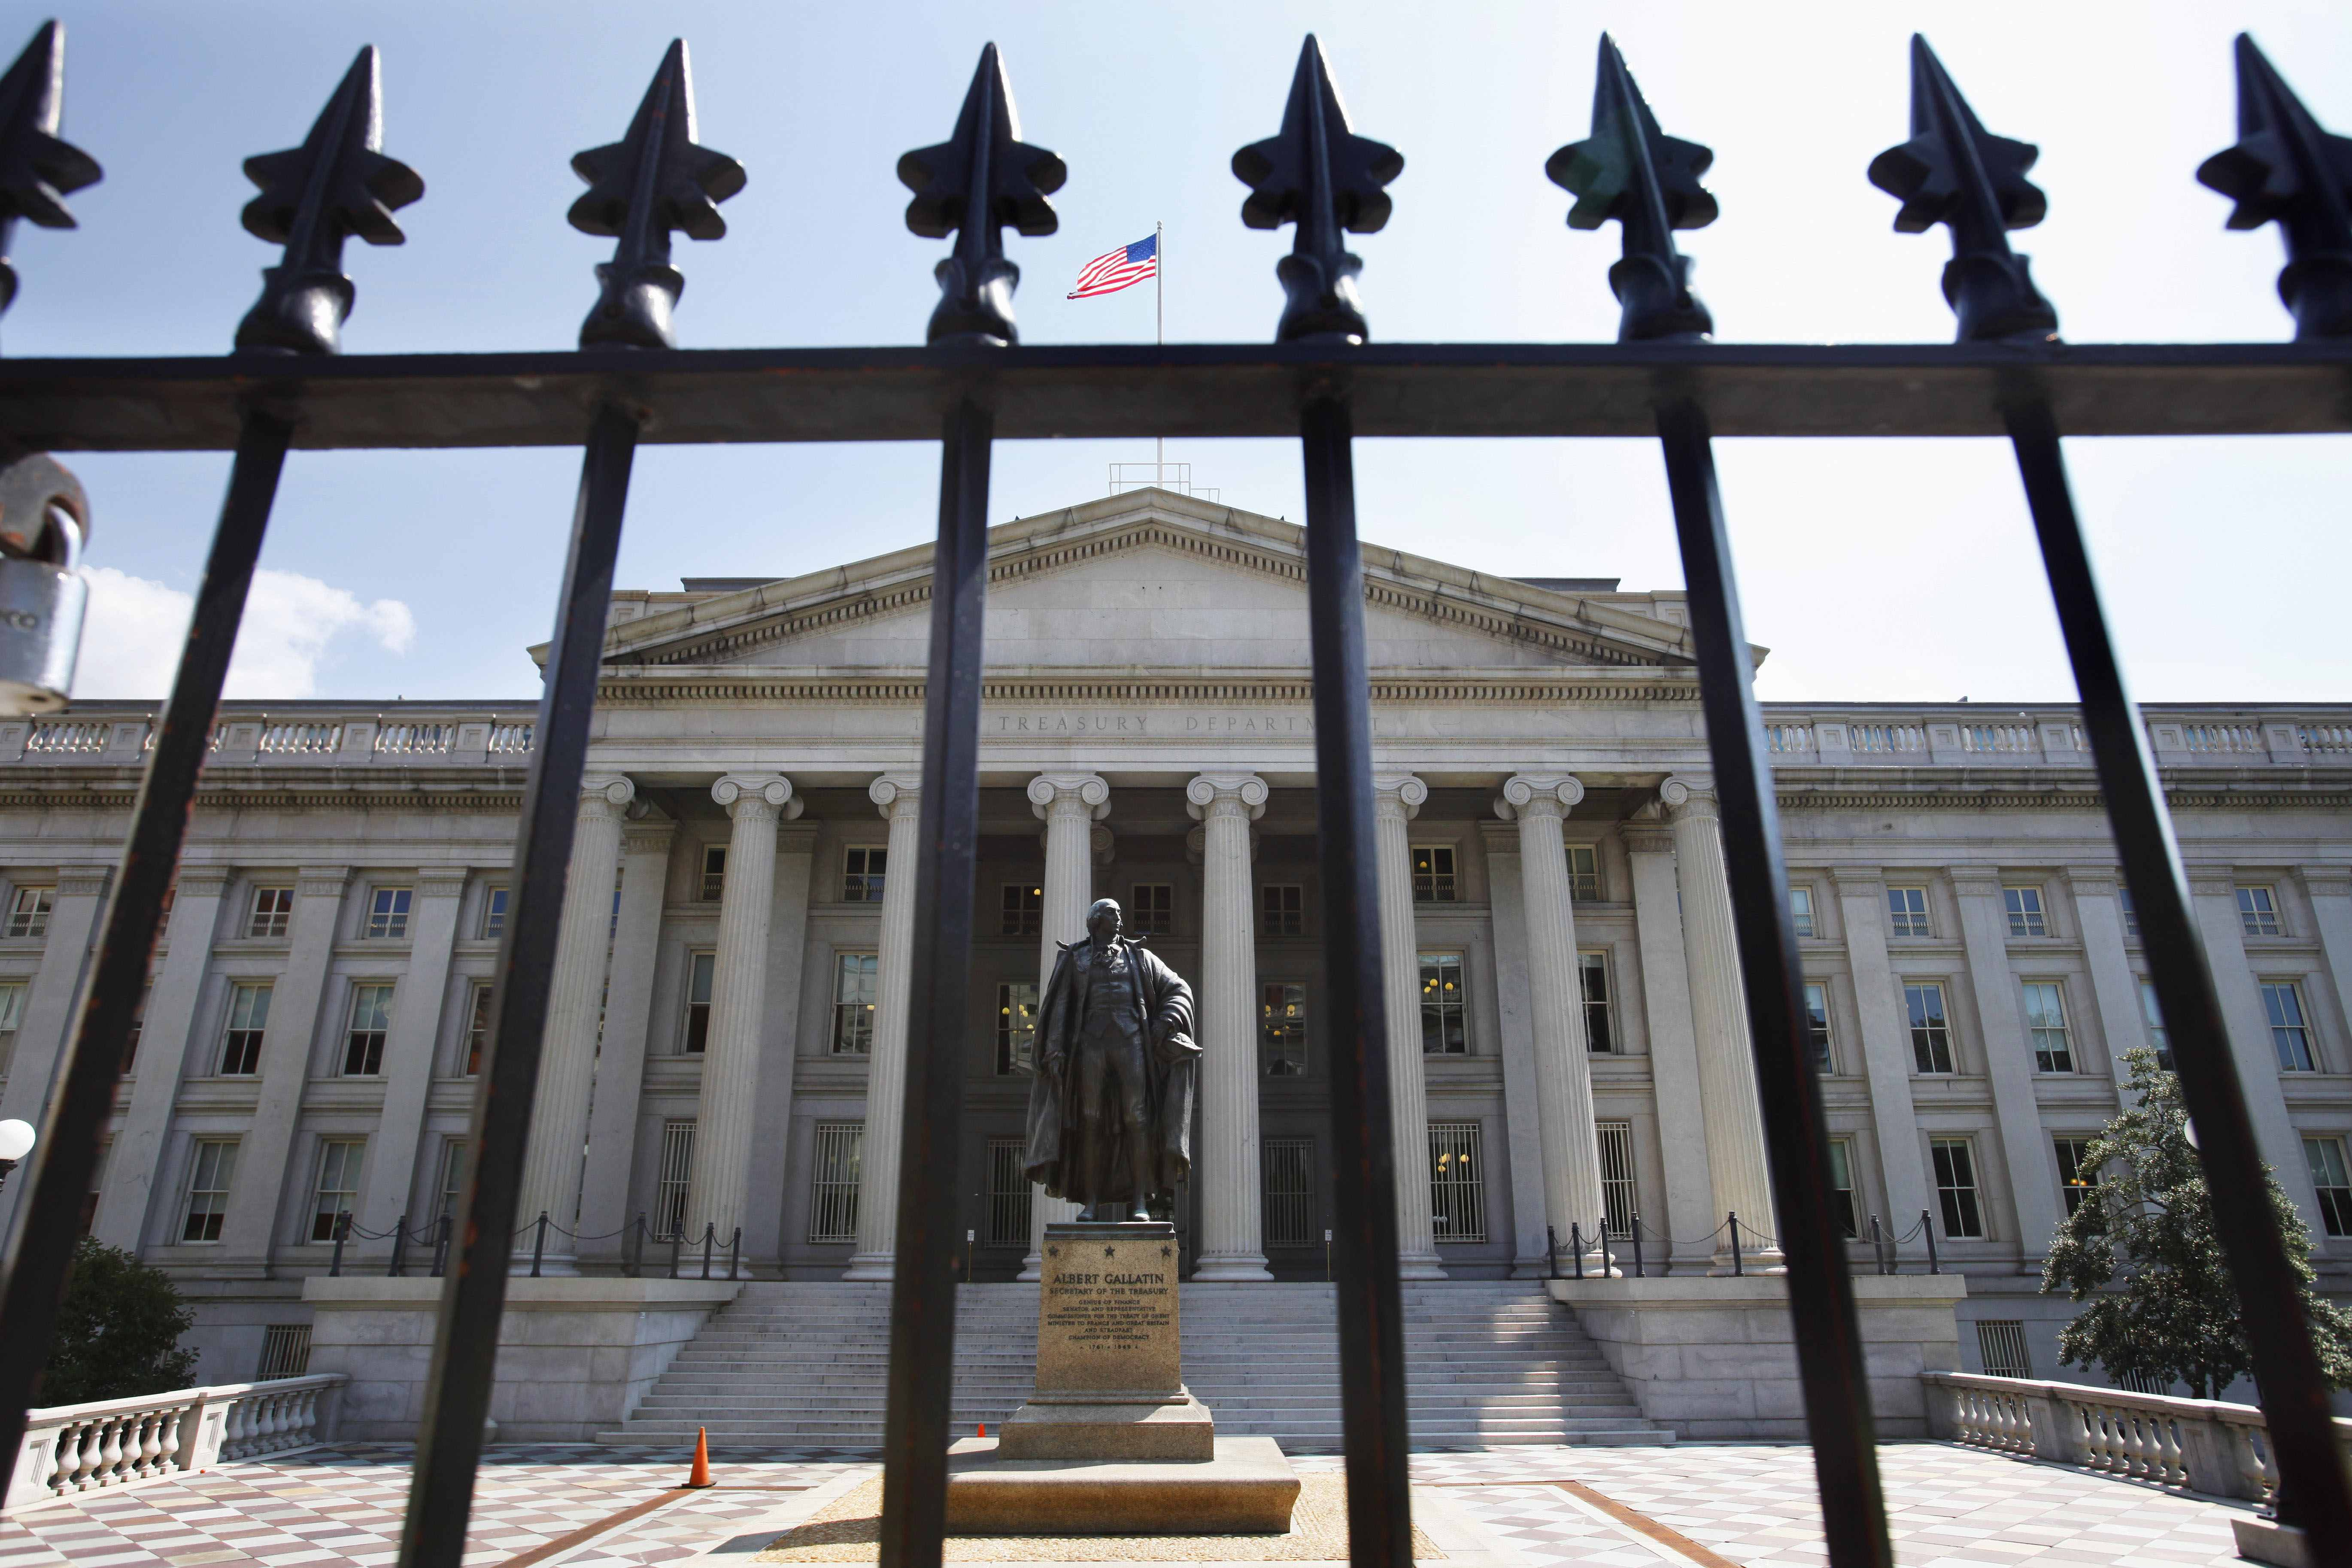 A statue of former Treasury Secretary Albert Gallatin stands guard outside the Treasury Building in Washington, Monday, Aug. 8, 2011, as stocks slid Monday amid a rout in global stocks after Standard & Poor''s downgraded the U.S. credit rating.